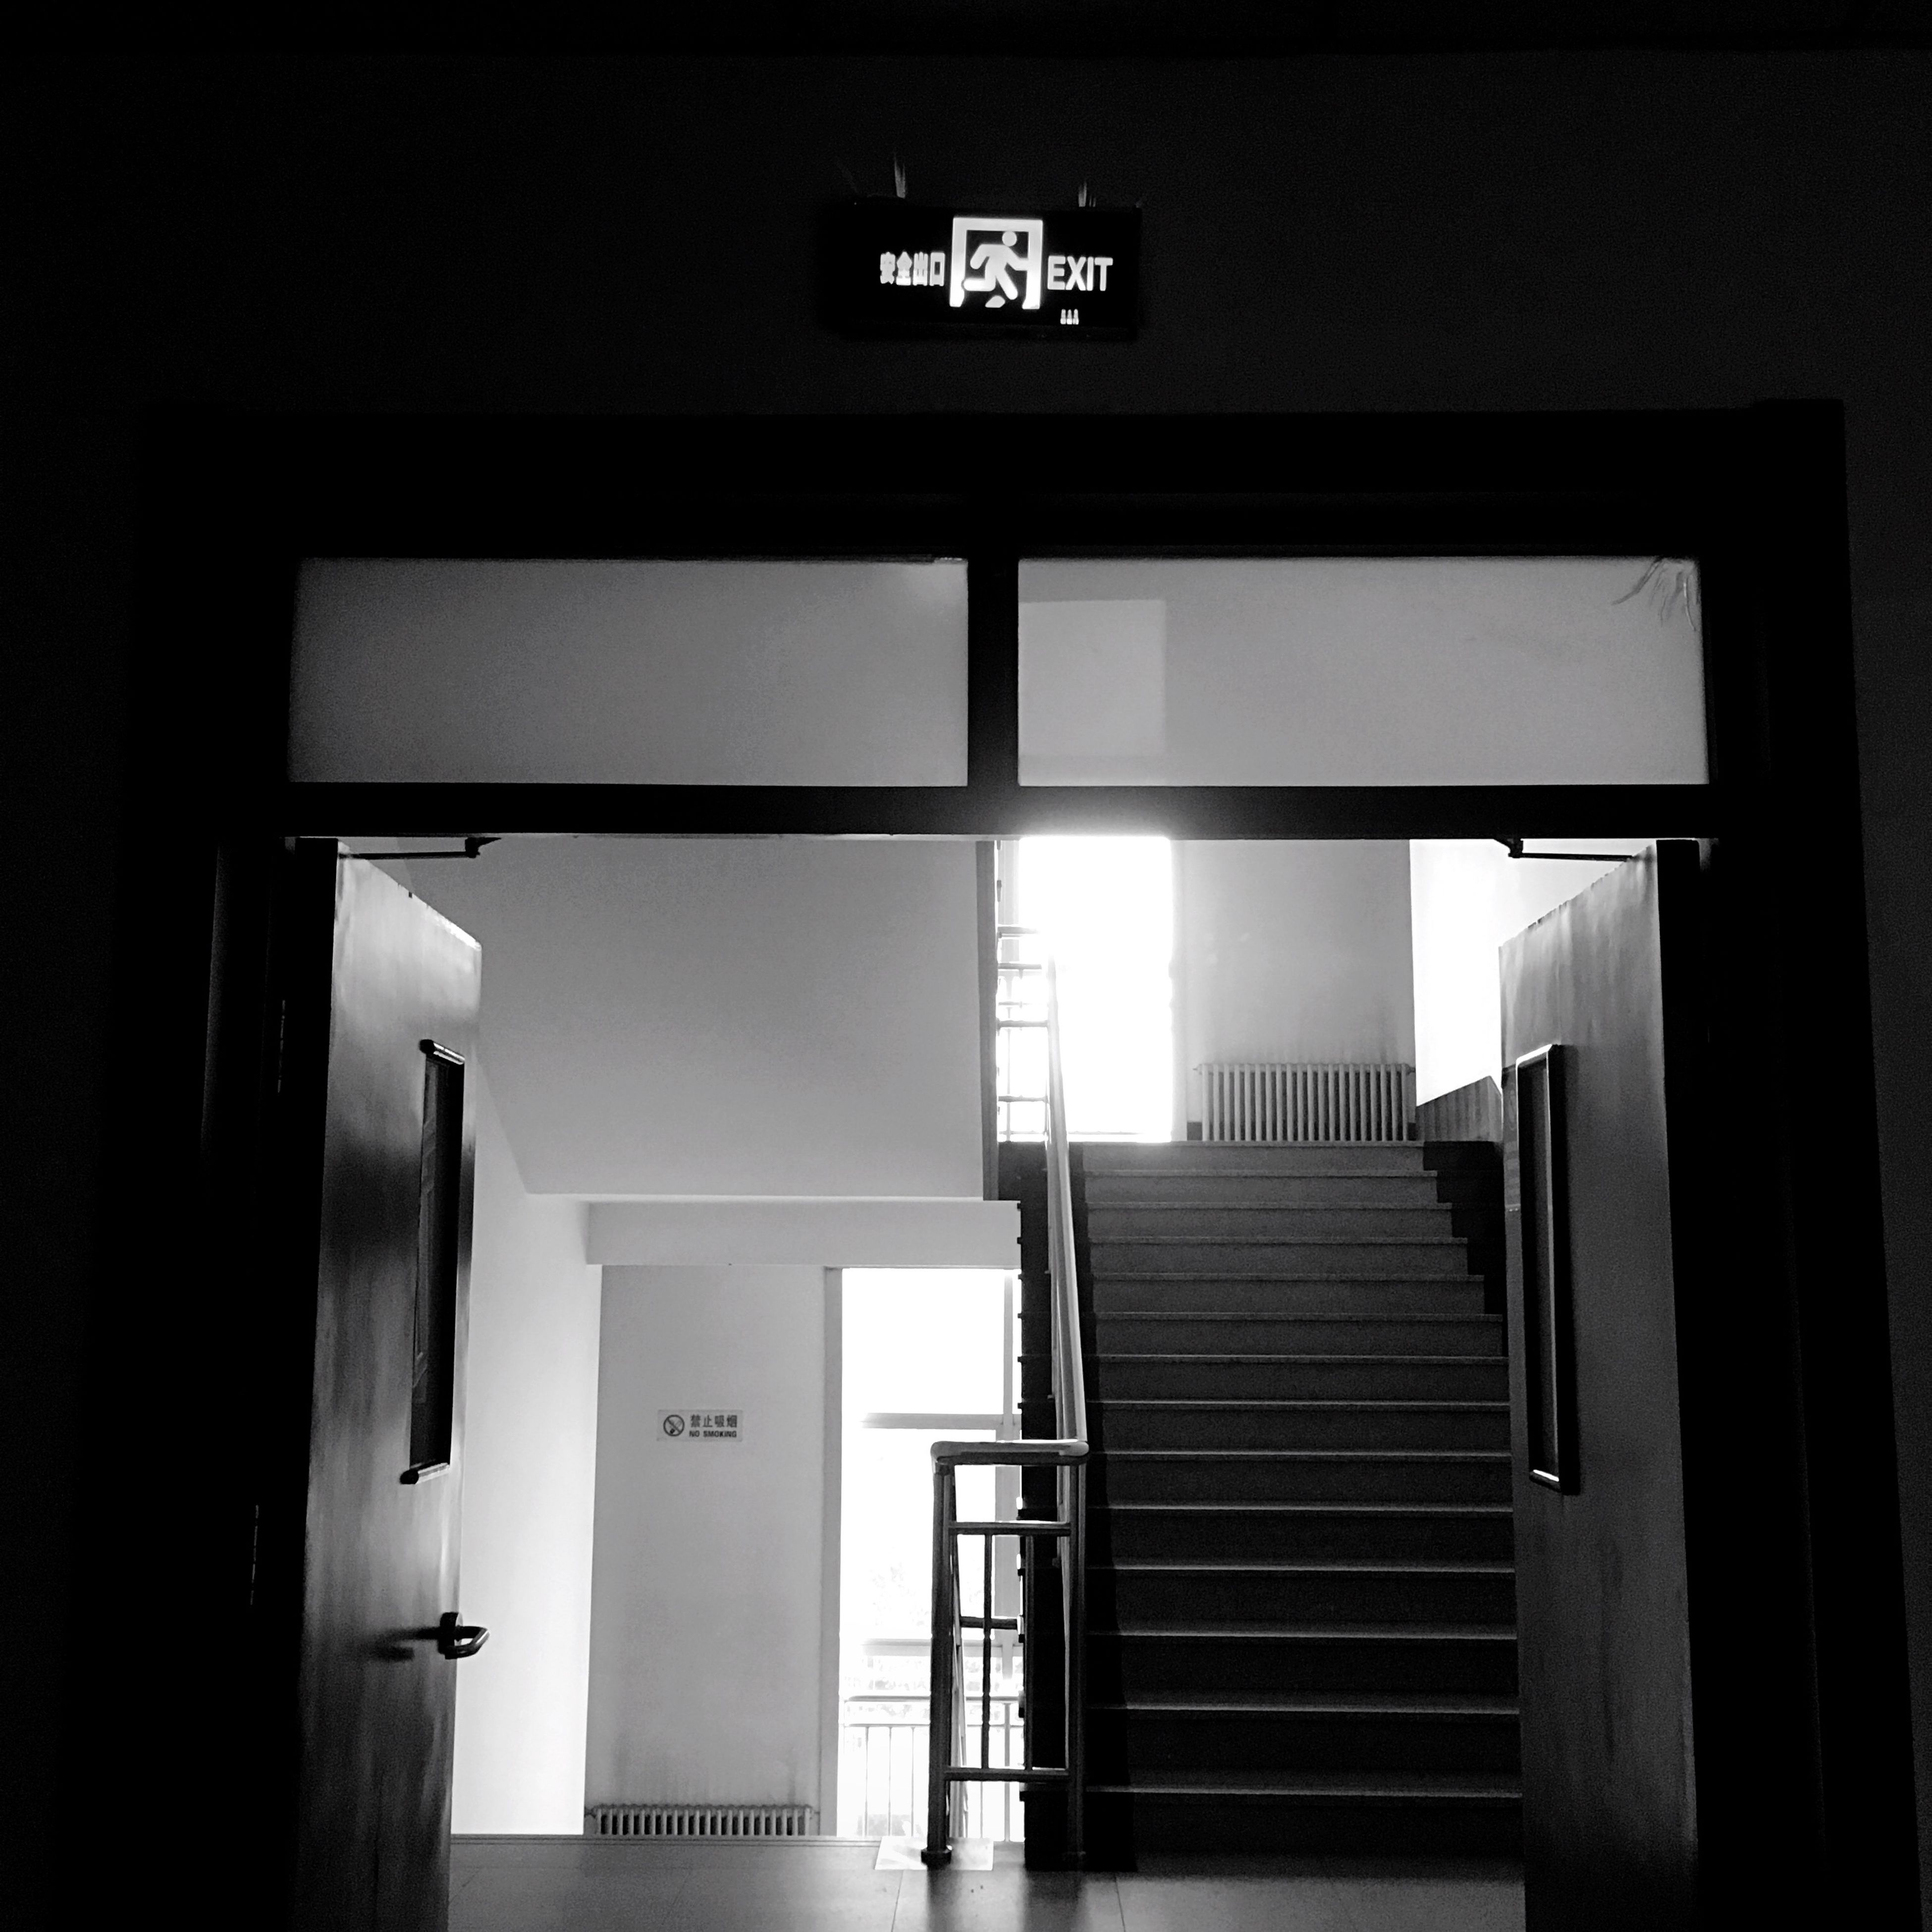 architecture, built structure, building, low angle view, closed, day, no people, corridor, empty, dark